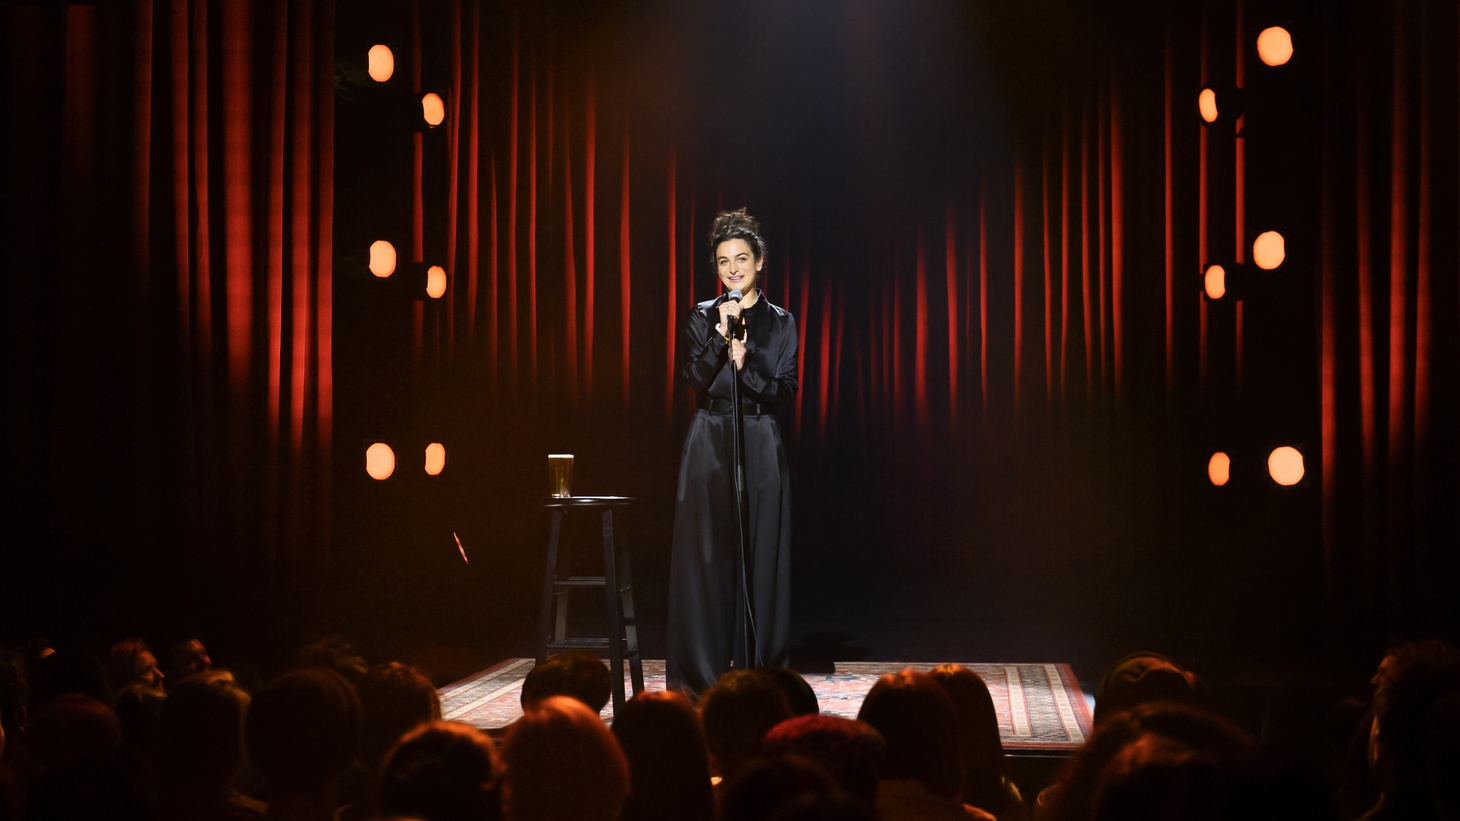 Jenny Slate performing in her new Netflix special.